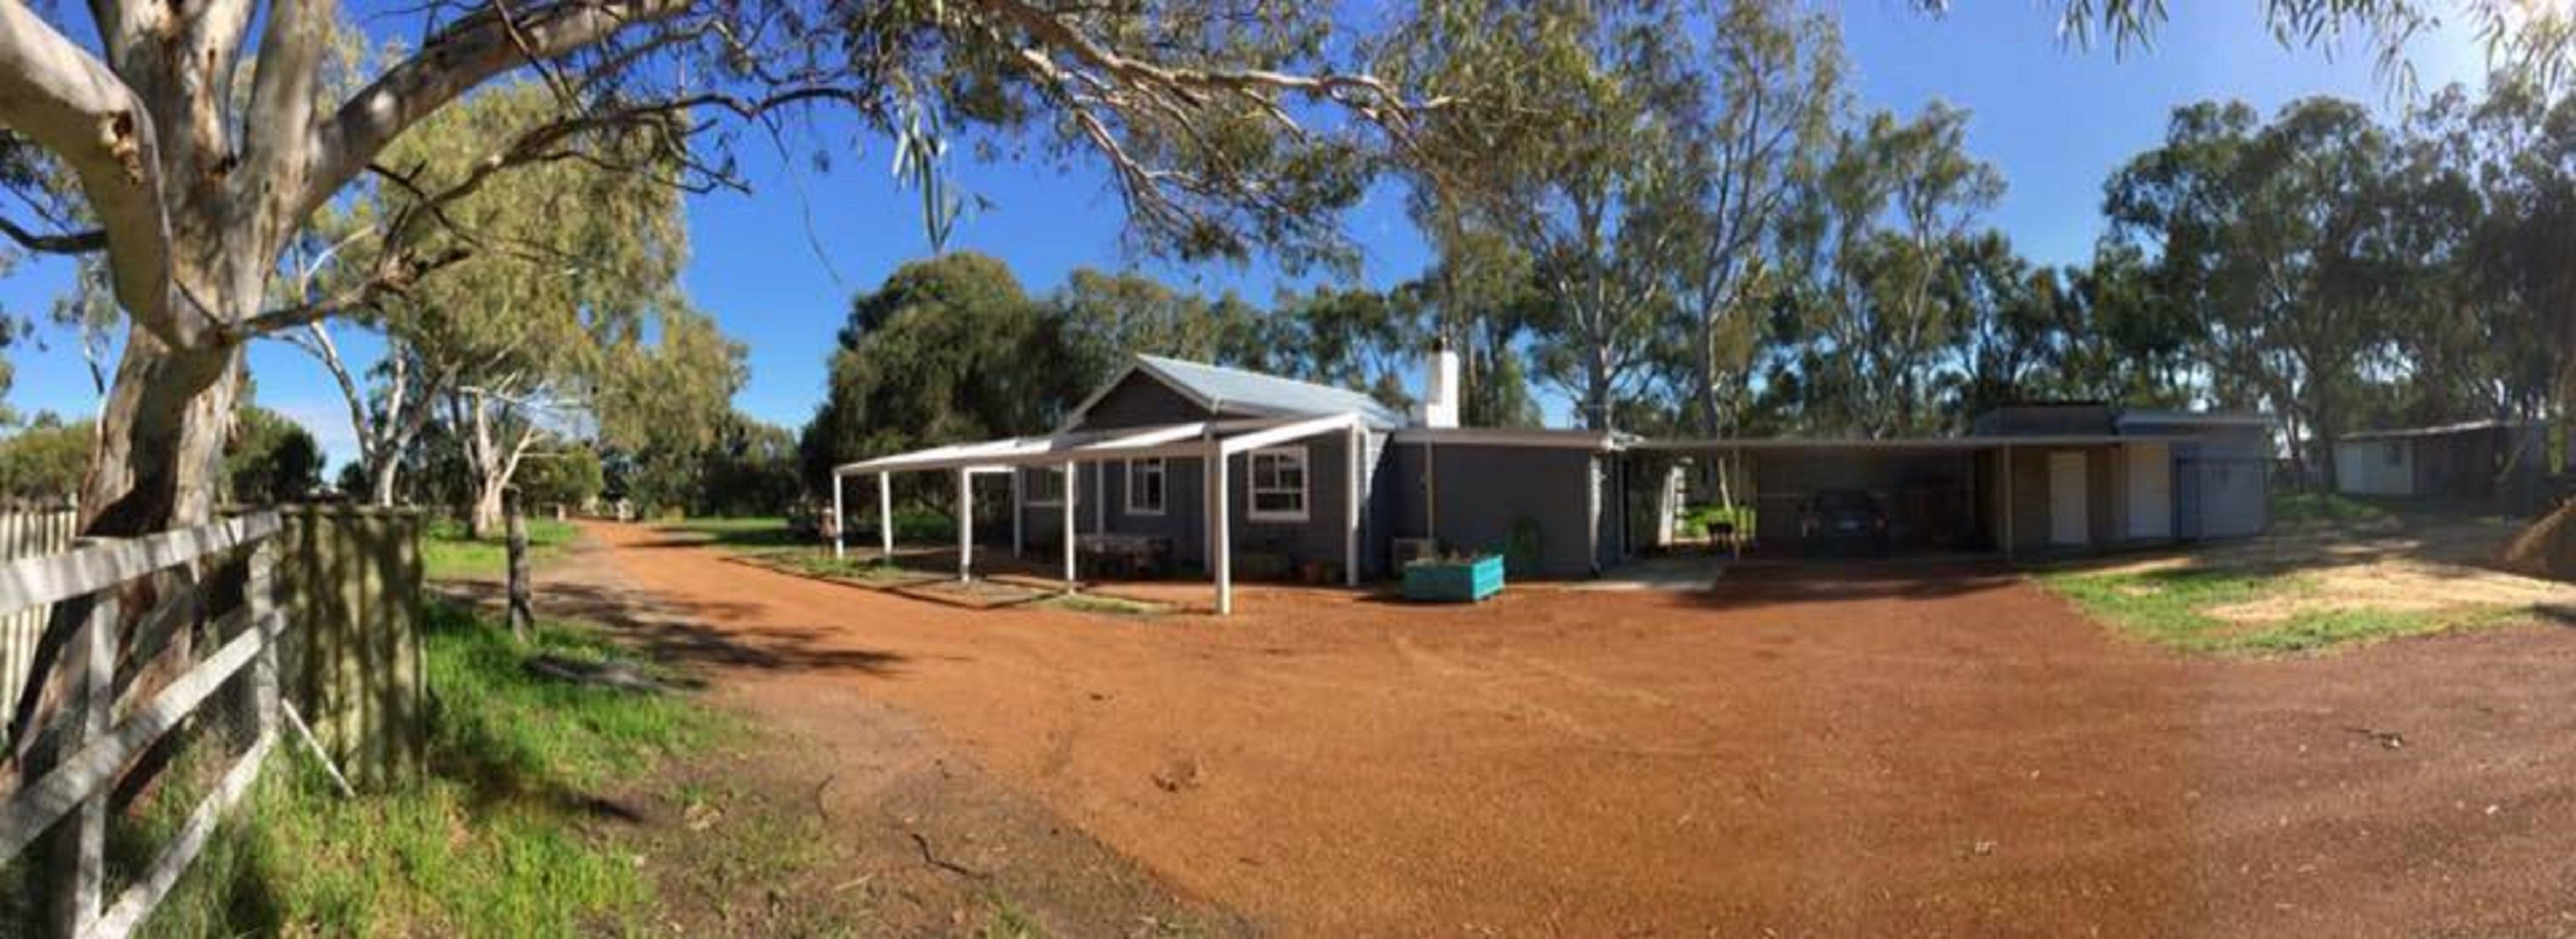 Aintree Cottage - Accommodation Rockhampton